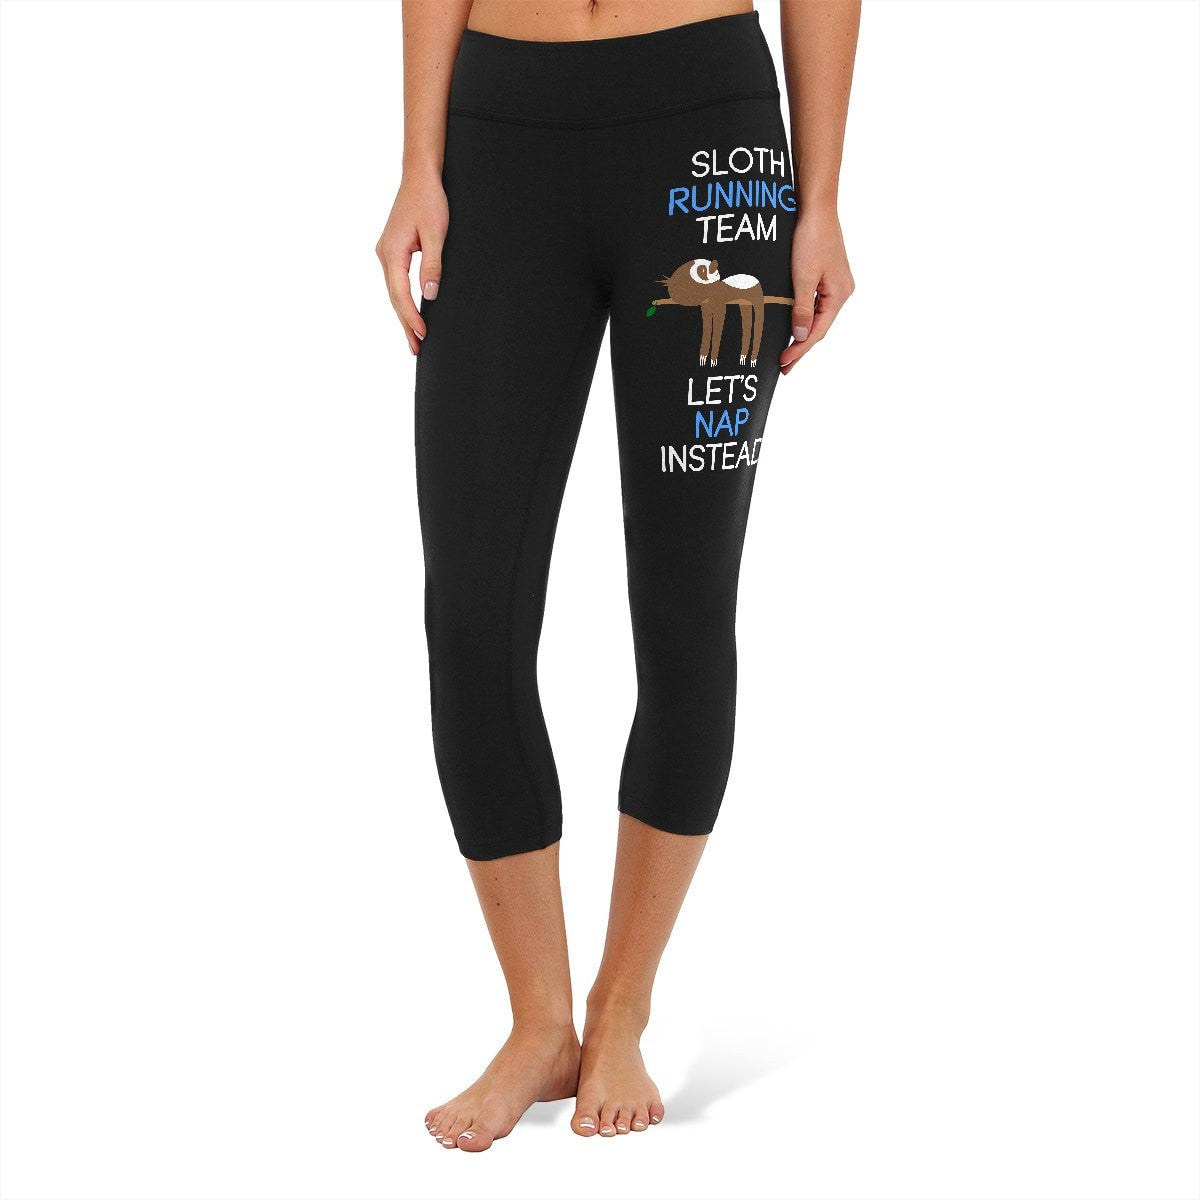 5b53958e824c7a Sloth Running Team - Fitness and Wit Leggings – YouStatement ...